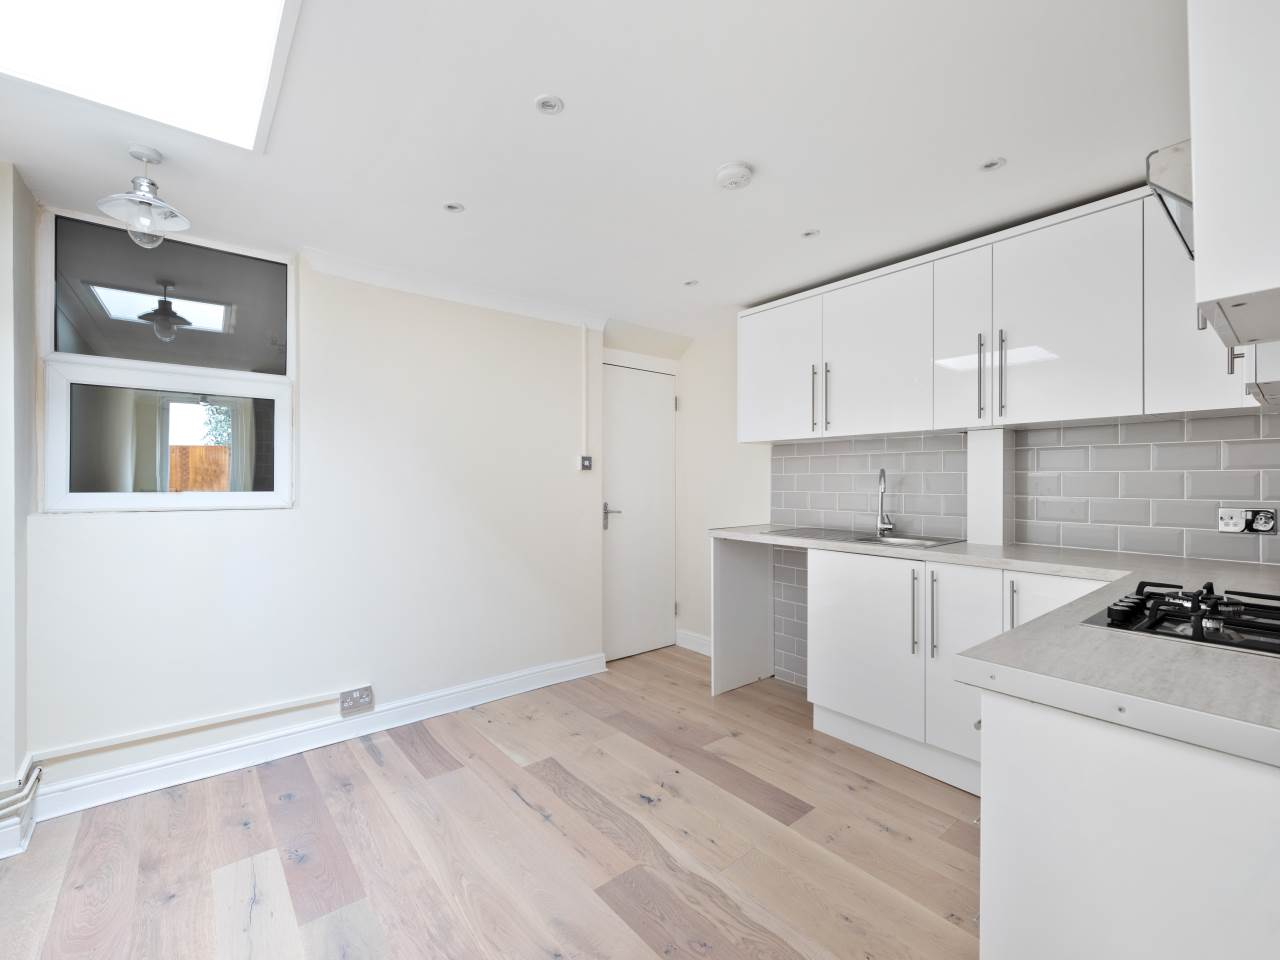 3 bed house for sale in Exning Road , Canning Town  6